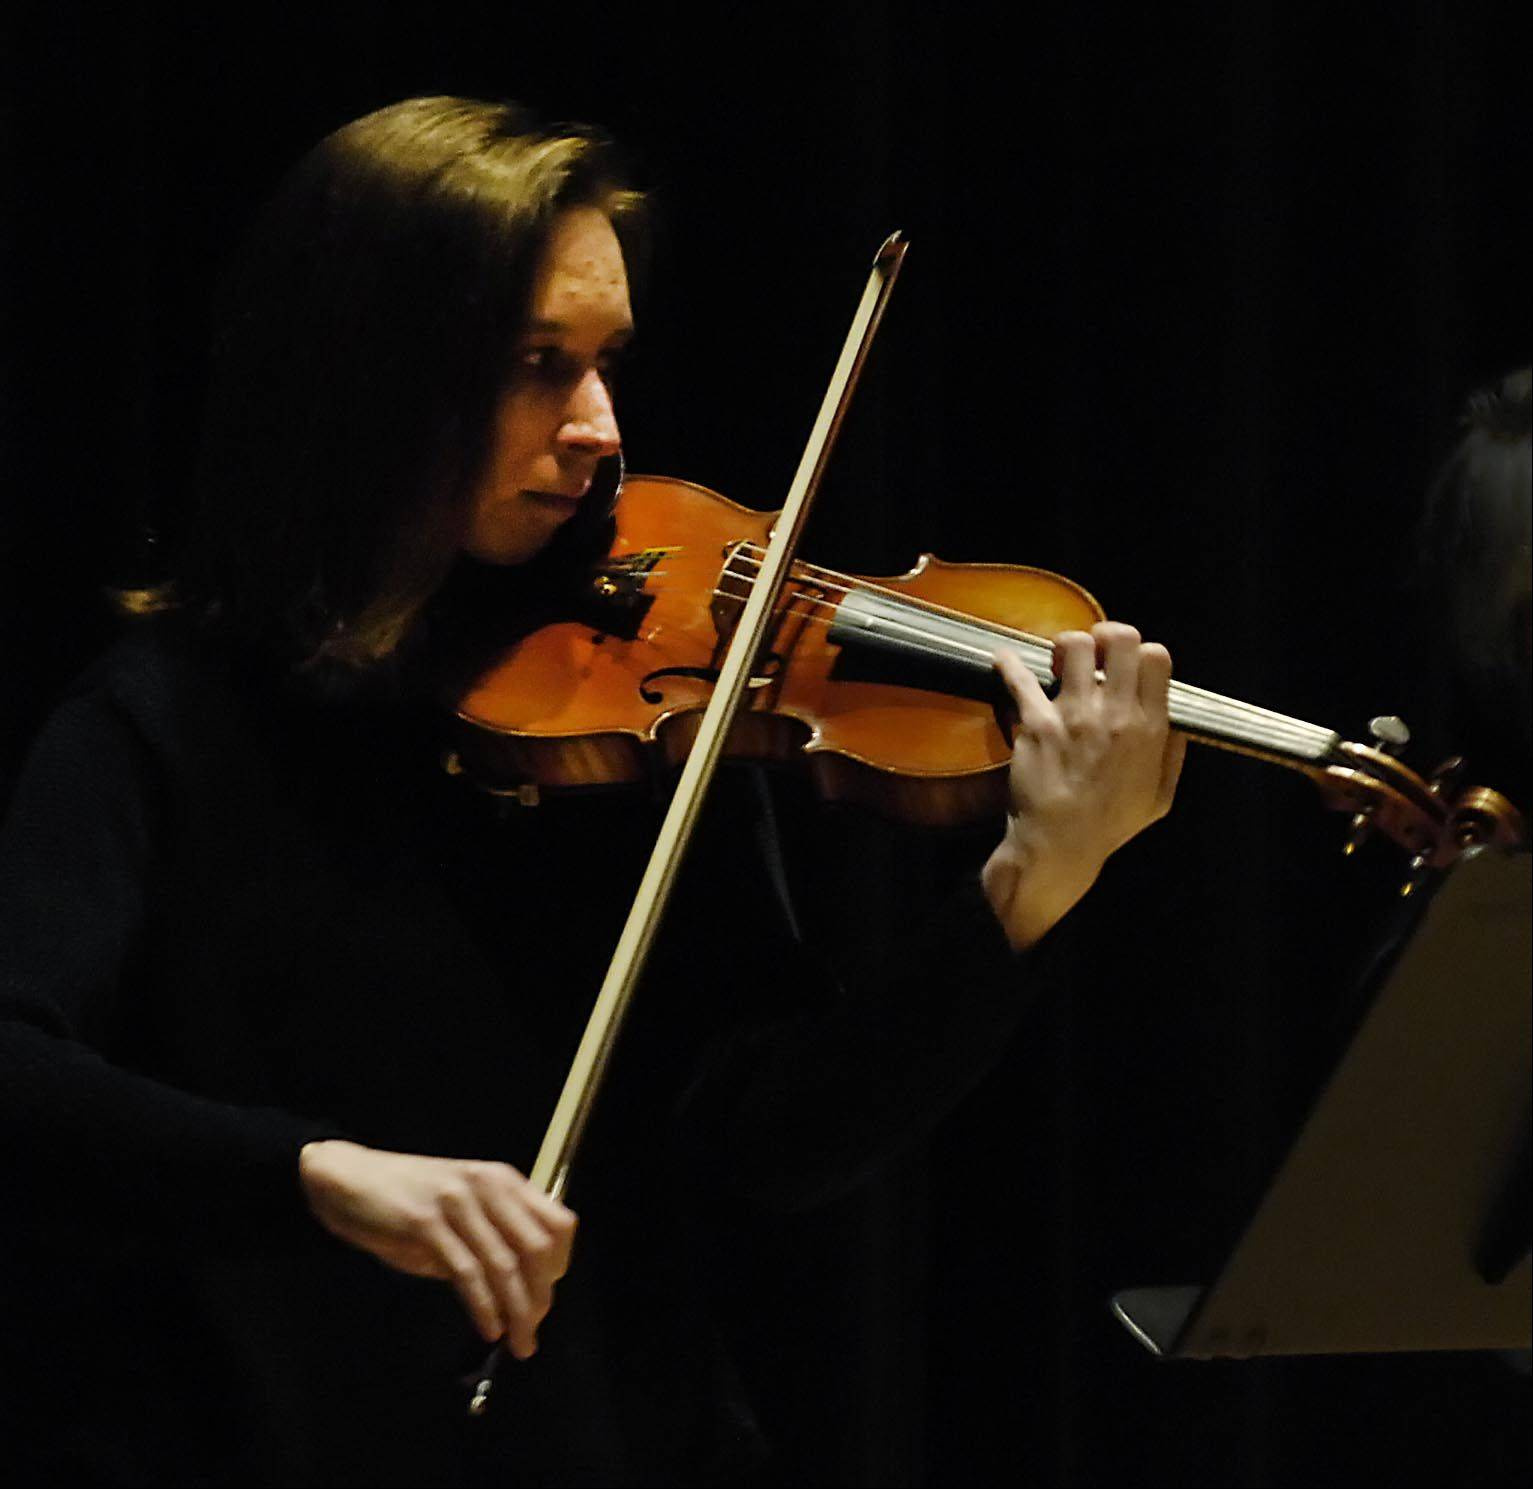 Beth Wood plays the violin Sunday during the Elgin Youth Symphony Orchestra faculty's fundraising recital at Elgin Community College. Wood is the conductor of the Primo Orchestra and was a member of the EYSO when she was a student.